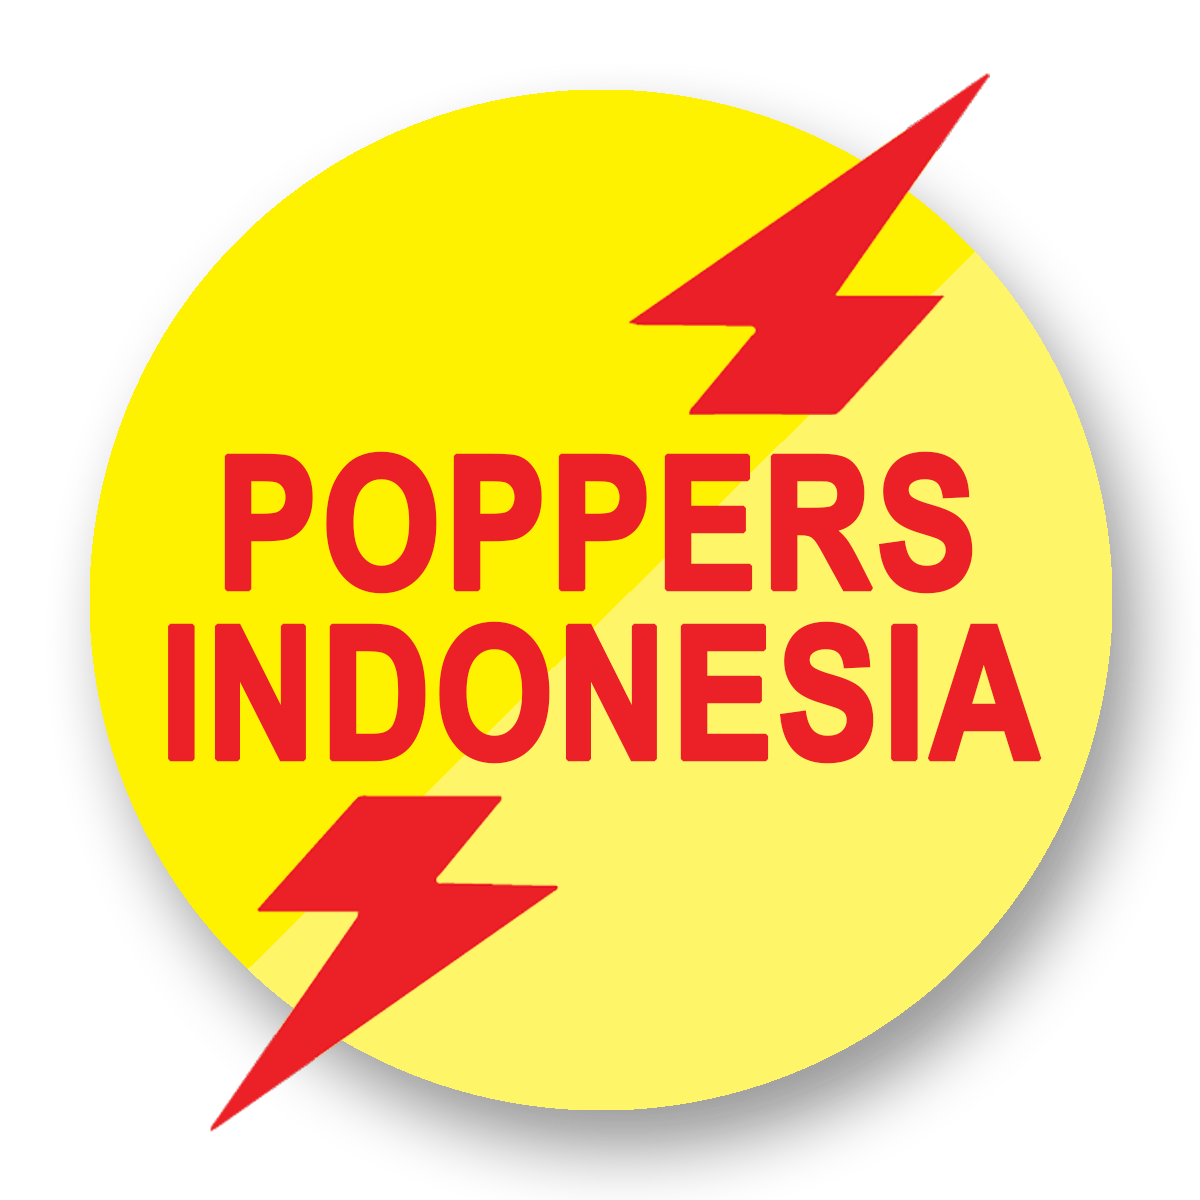 POPPERS.ID